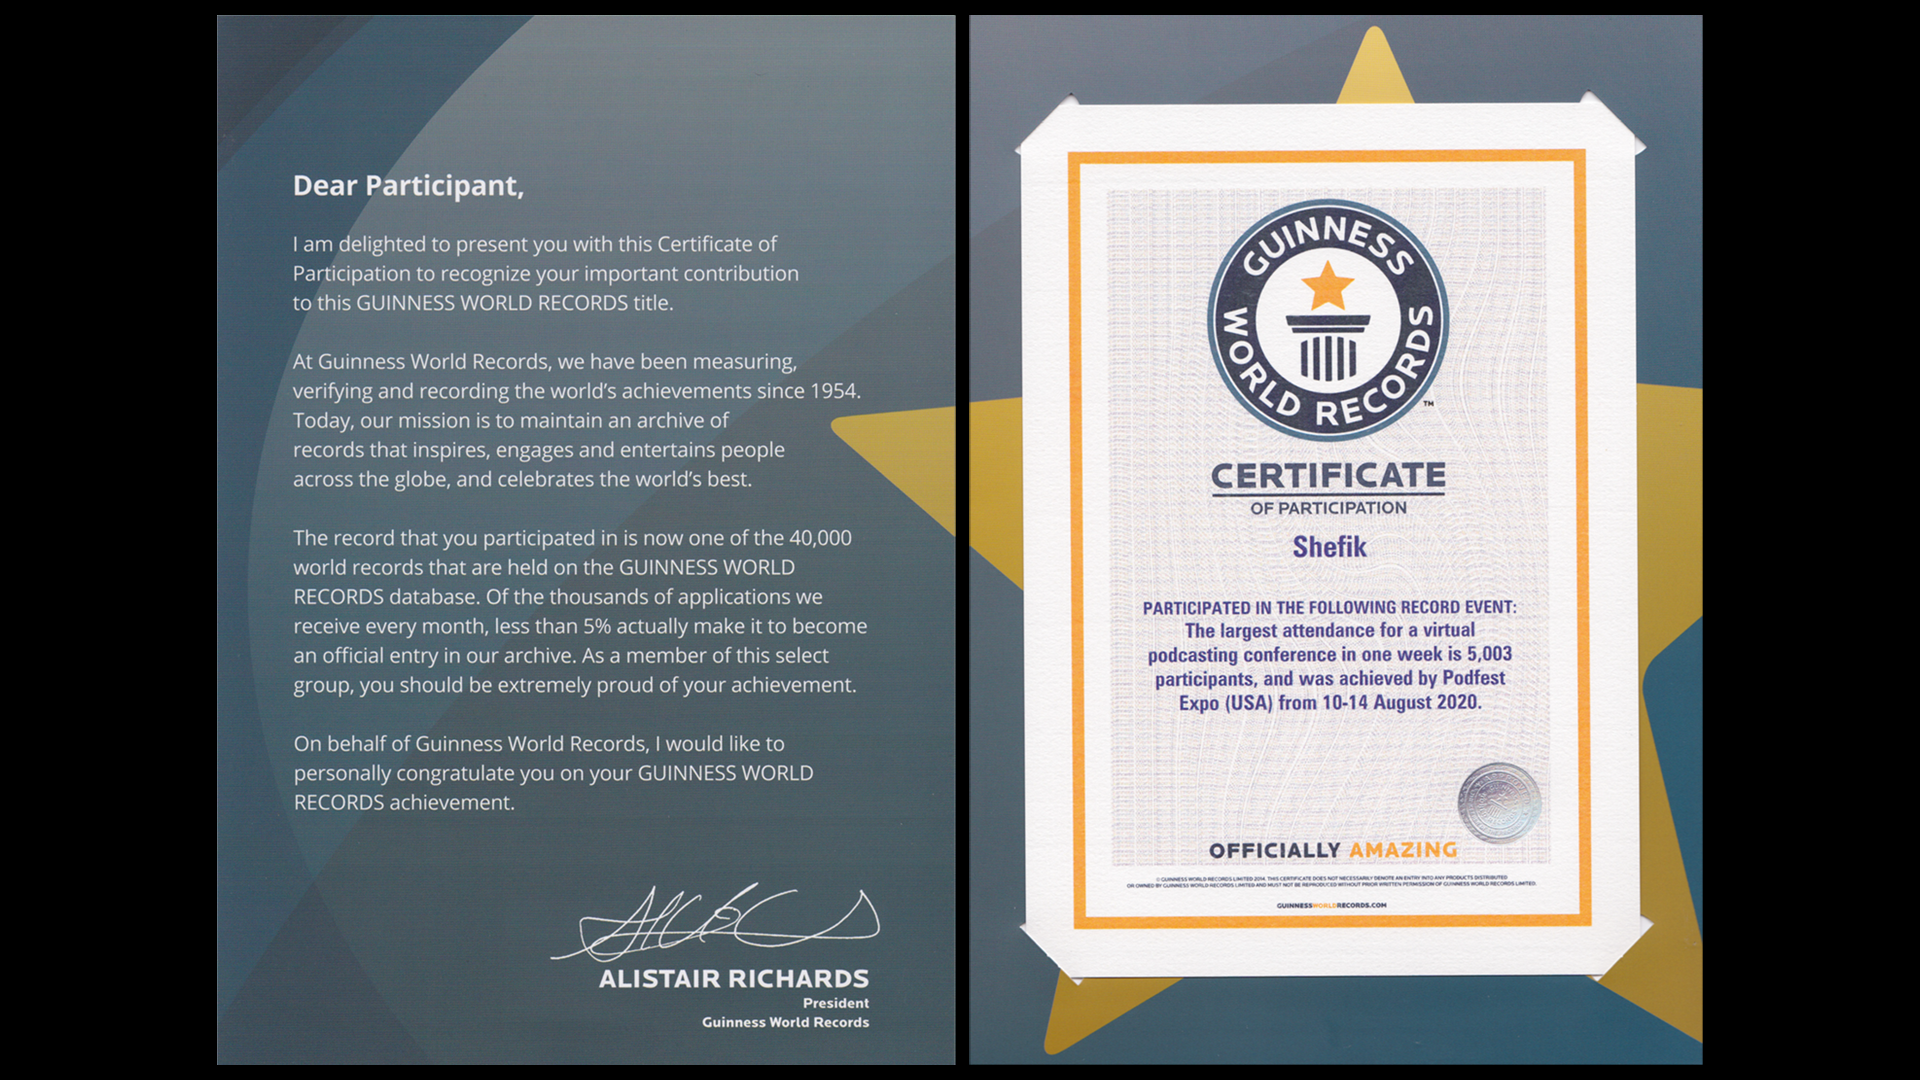 Shefik Participates With Podfest Expo and Sets Guinness World Record